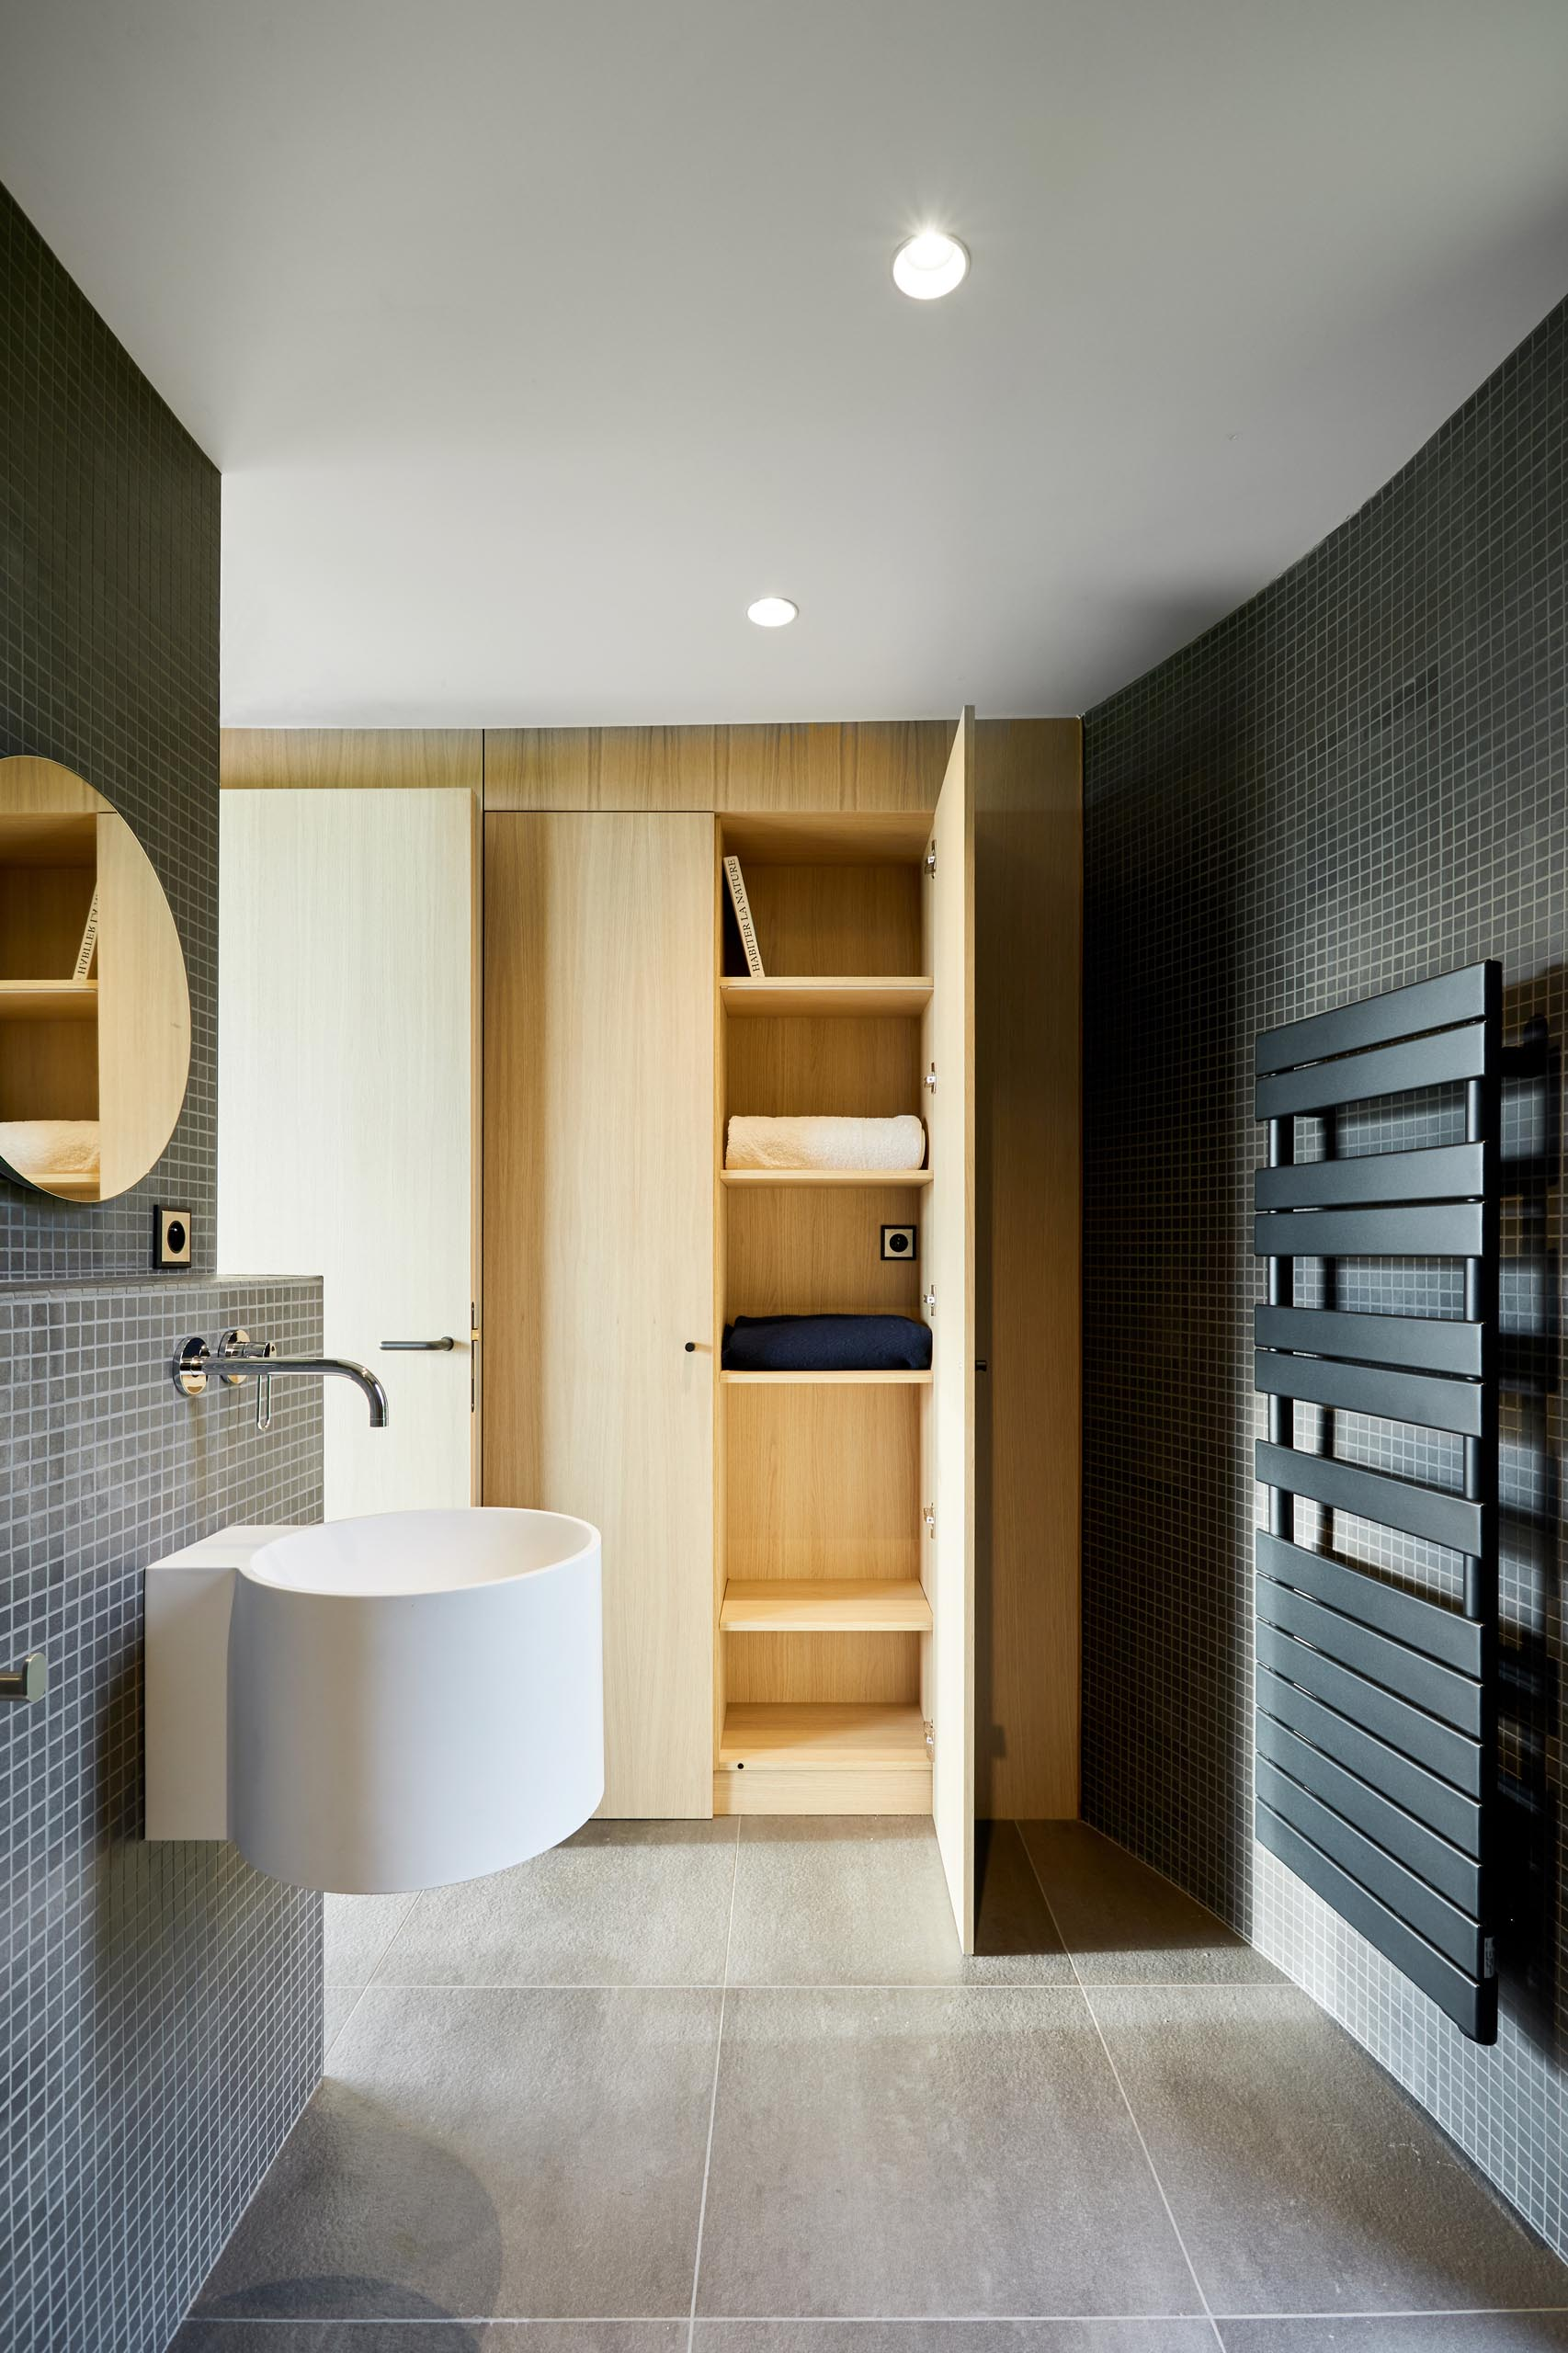 A modern bathroom with walls covered in small square grey tiles.